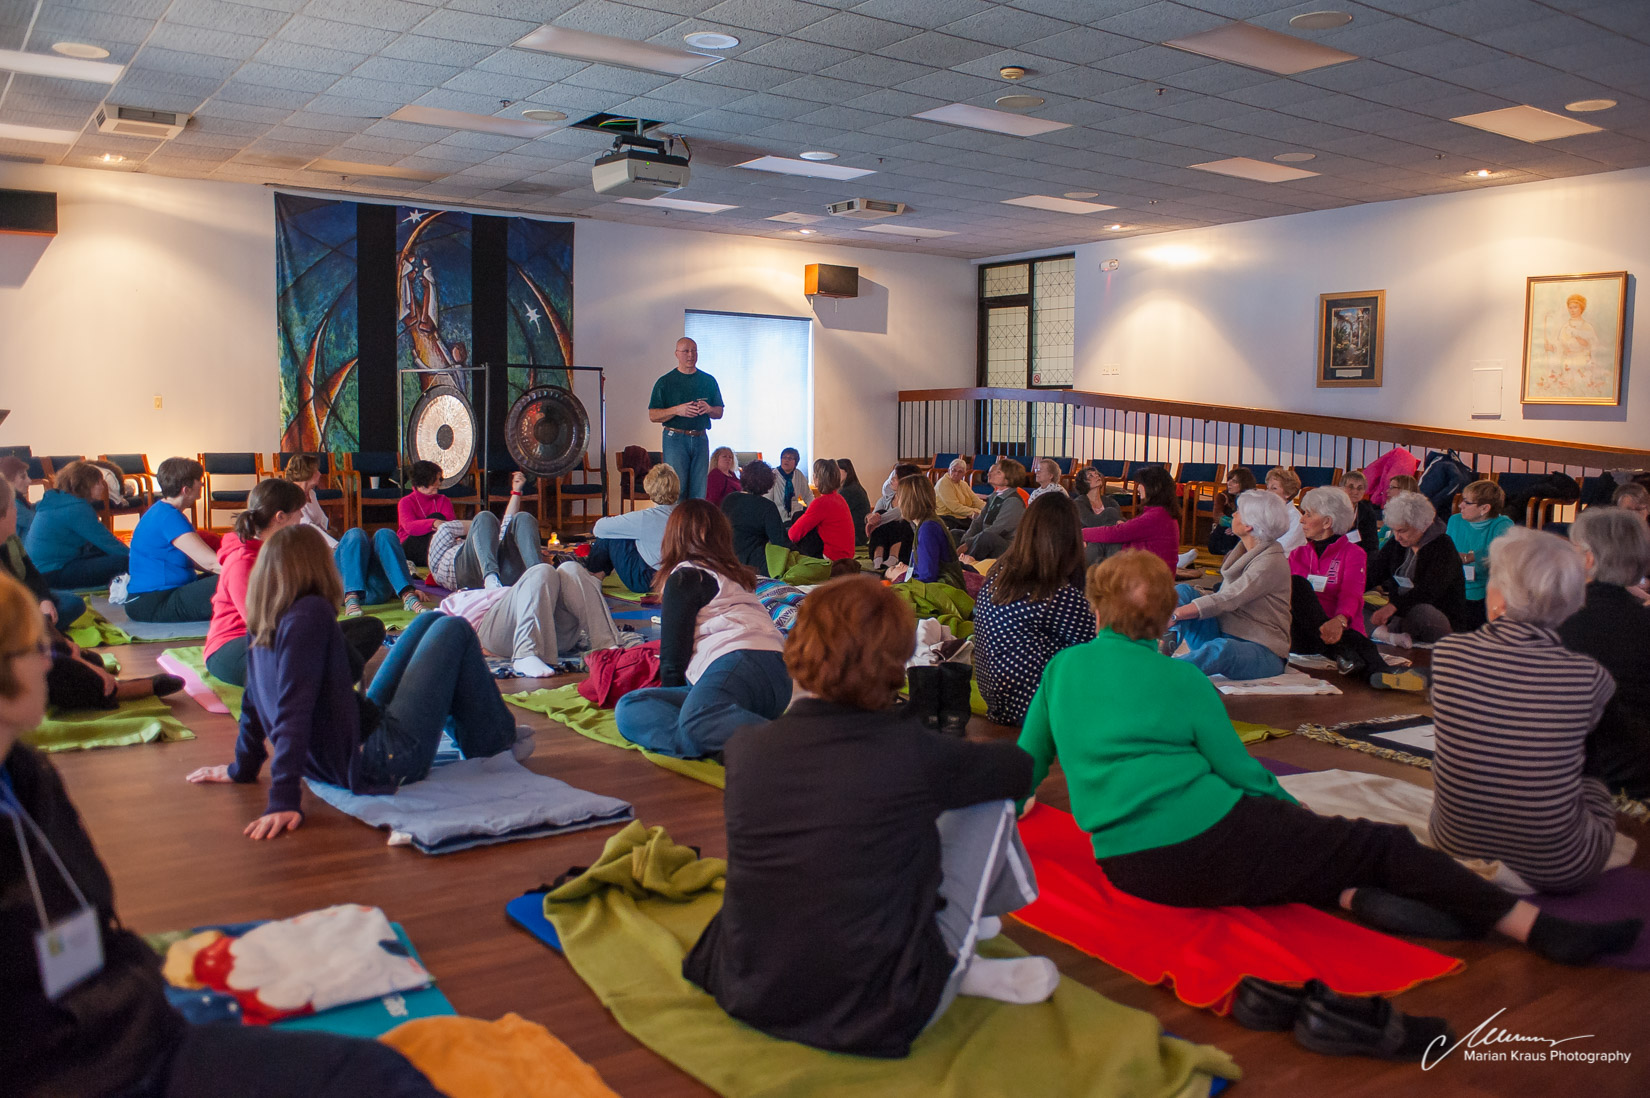 At a gong meditation performance with Marian Kraus during the women's retreat at the Carmelite Spiritual Center in Darien, IL.